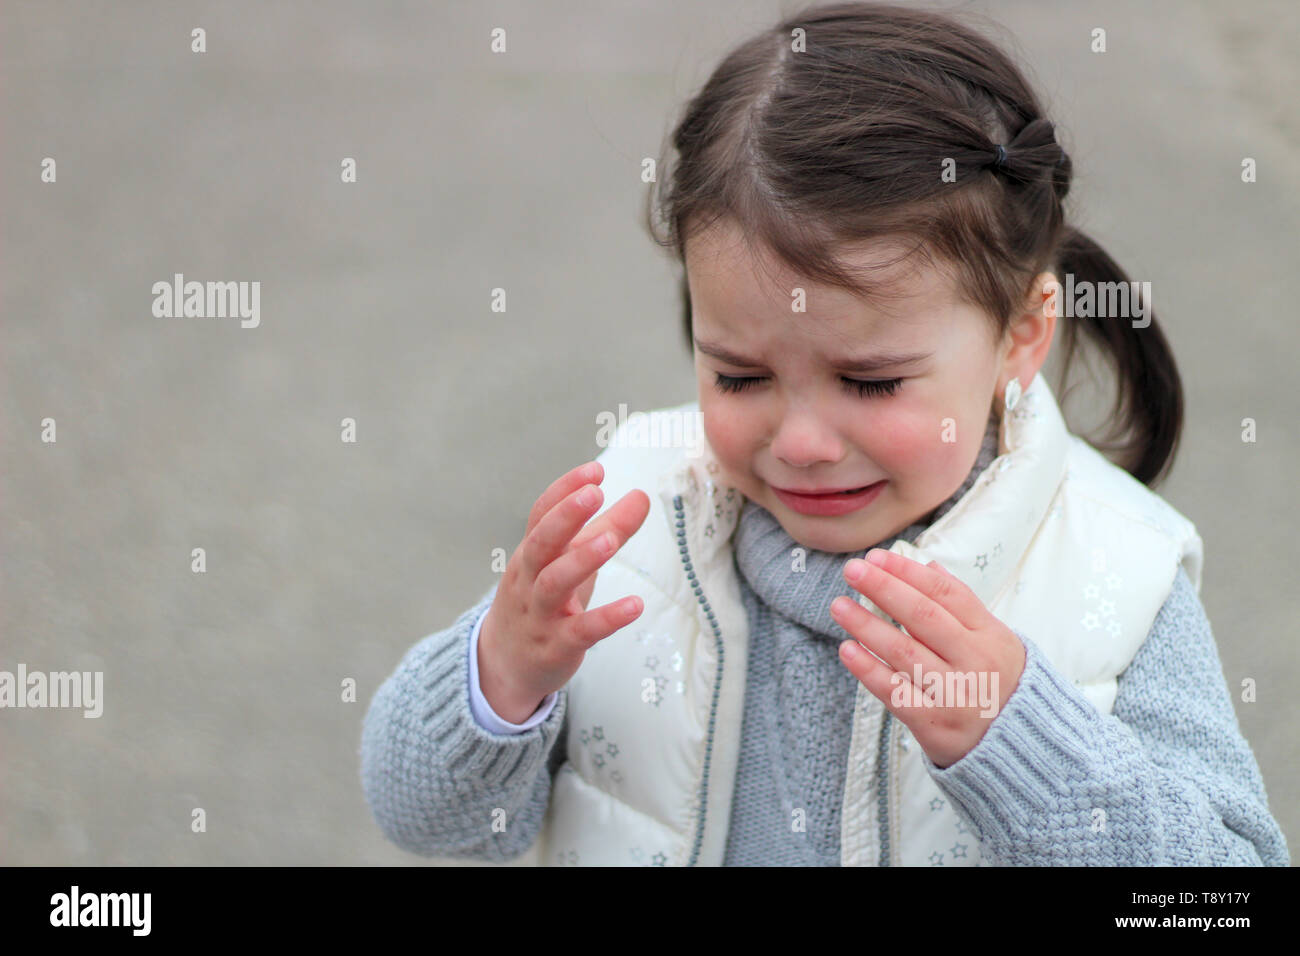 crying girl with pigtails in a sweater and vest raises her hands up - Stock Image